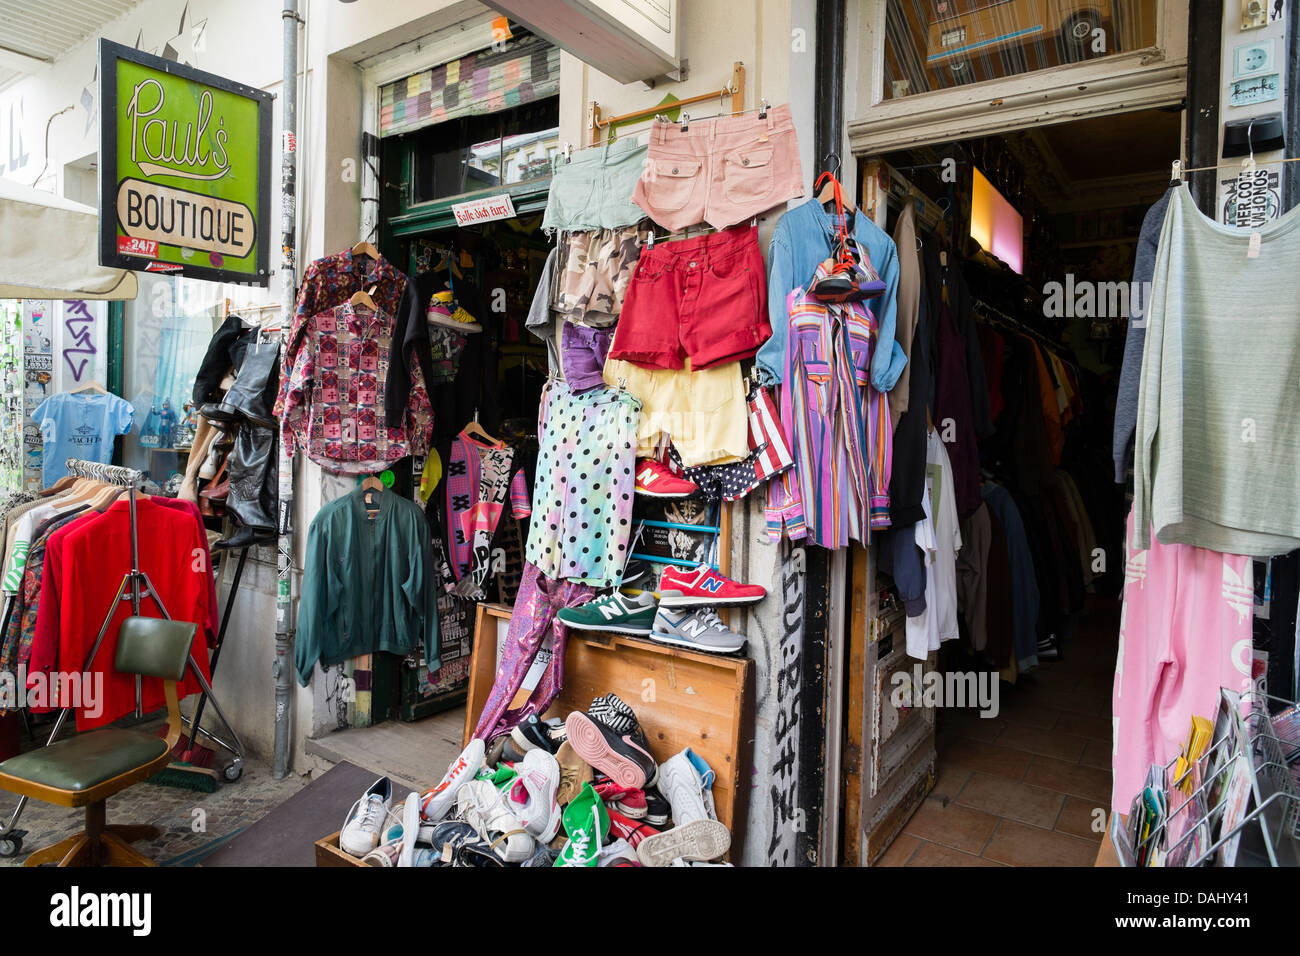 Secondhand clothes shop in bohemian Prenzlauer Berg district of Berlin Germany - Stock Image